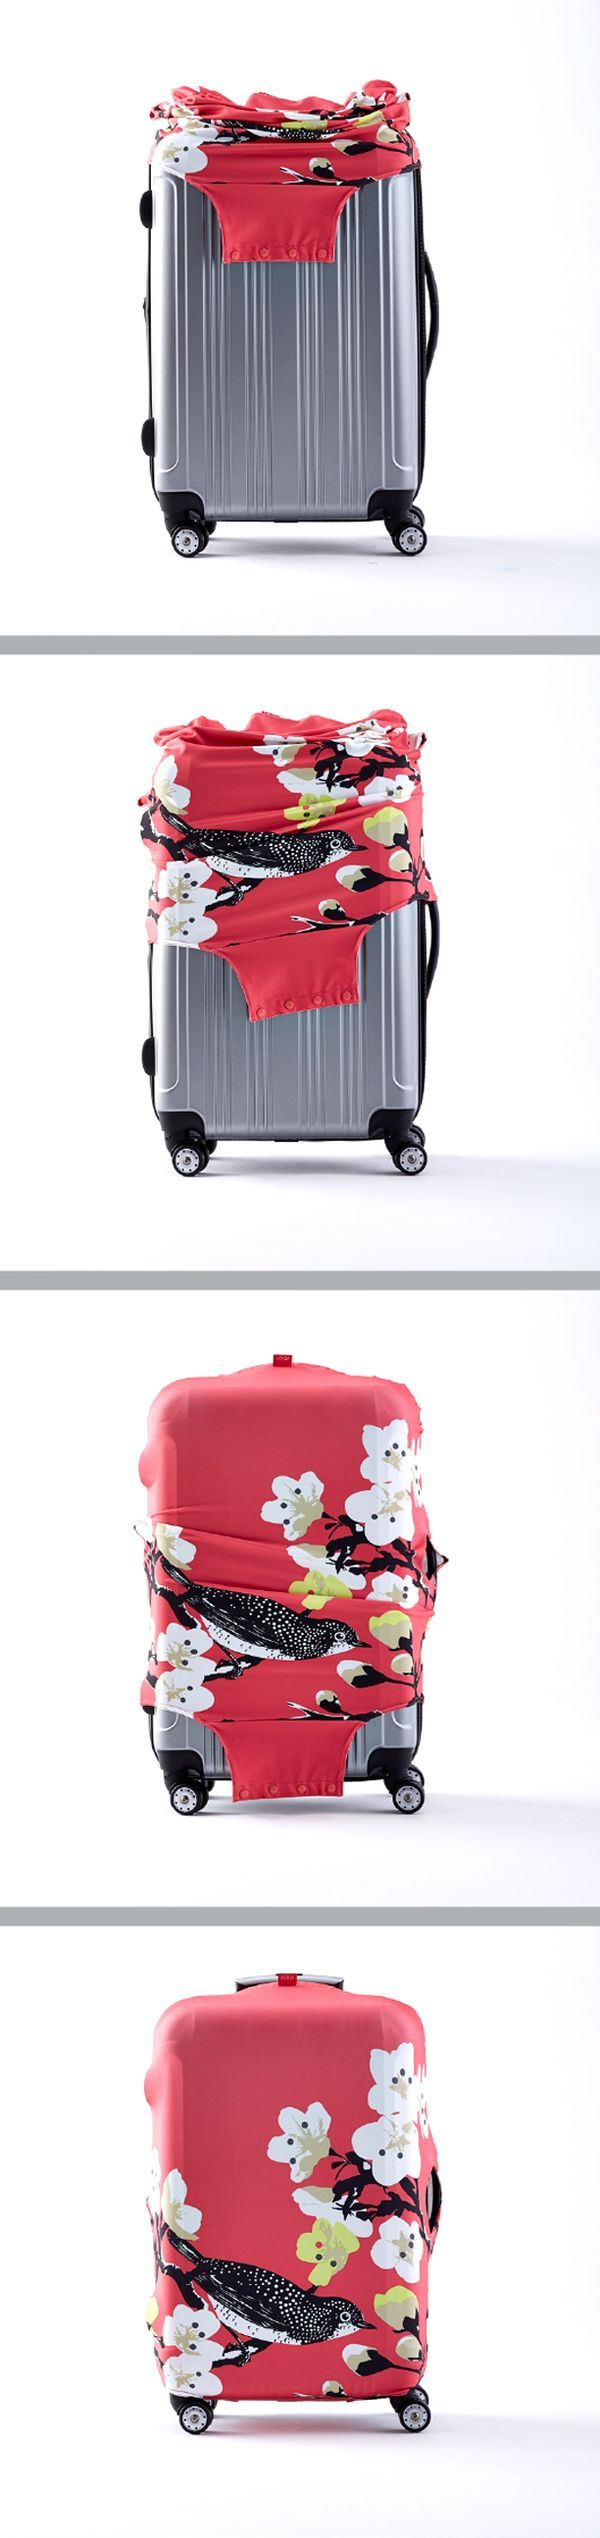 We've got your luggage COVERED with our fabulous Luggage Colors in many beautiful patterns!